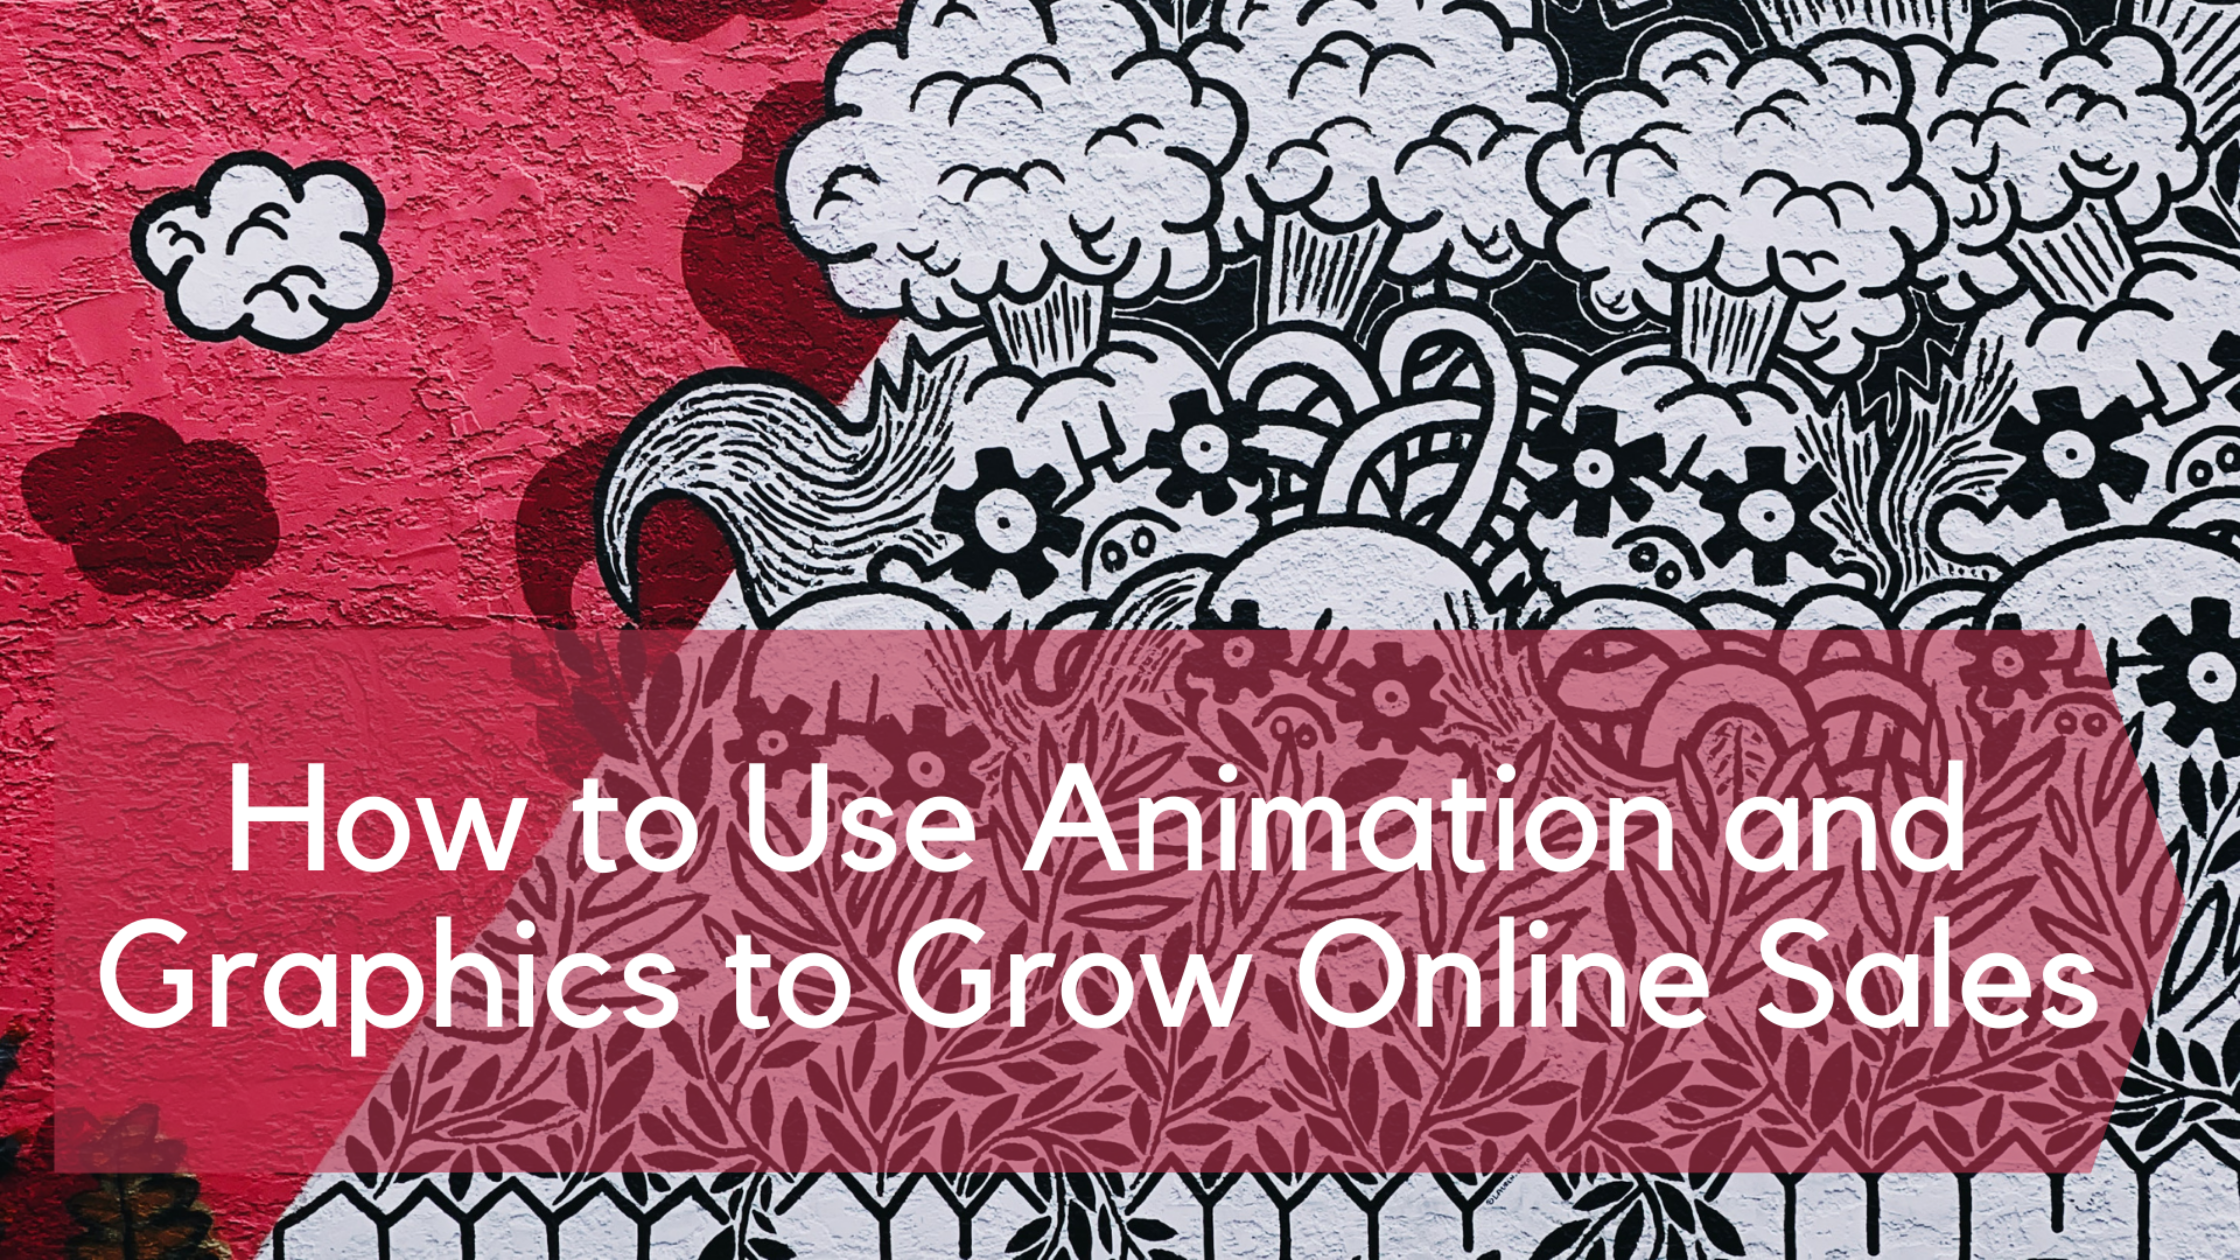 Use Animation and Graphics